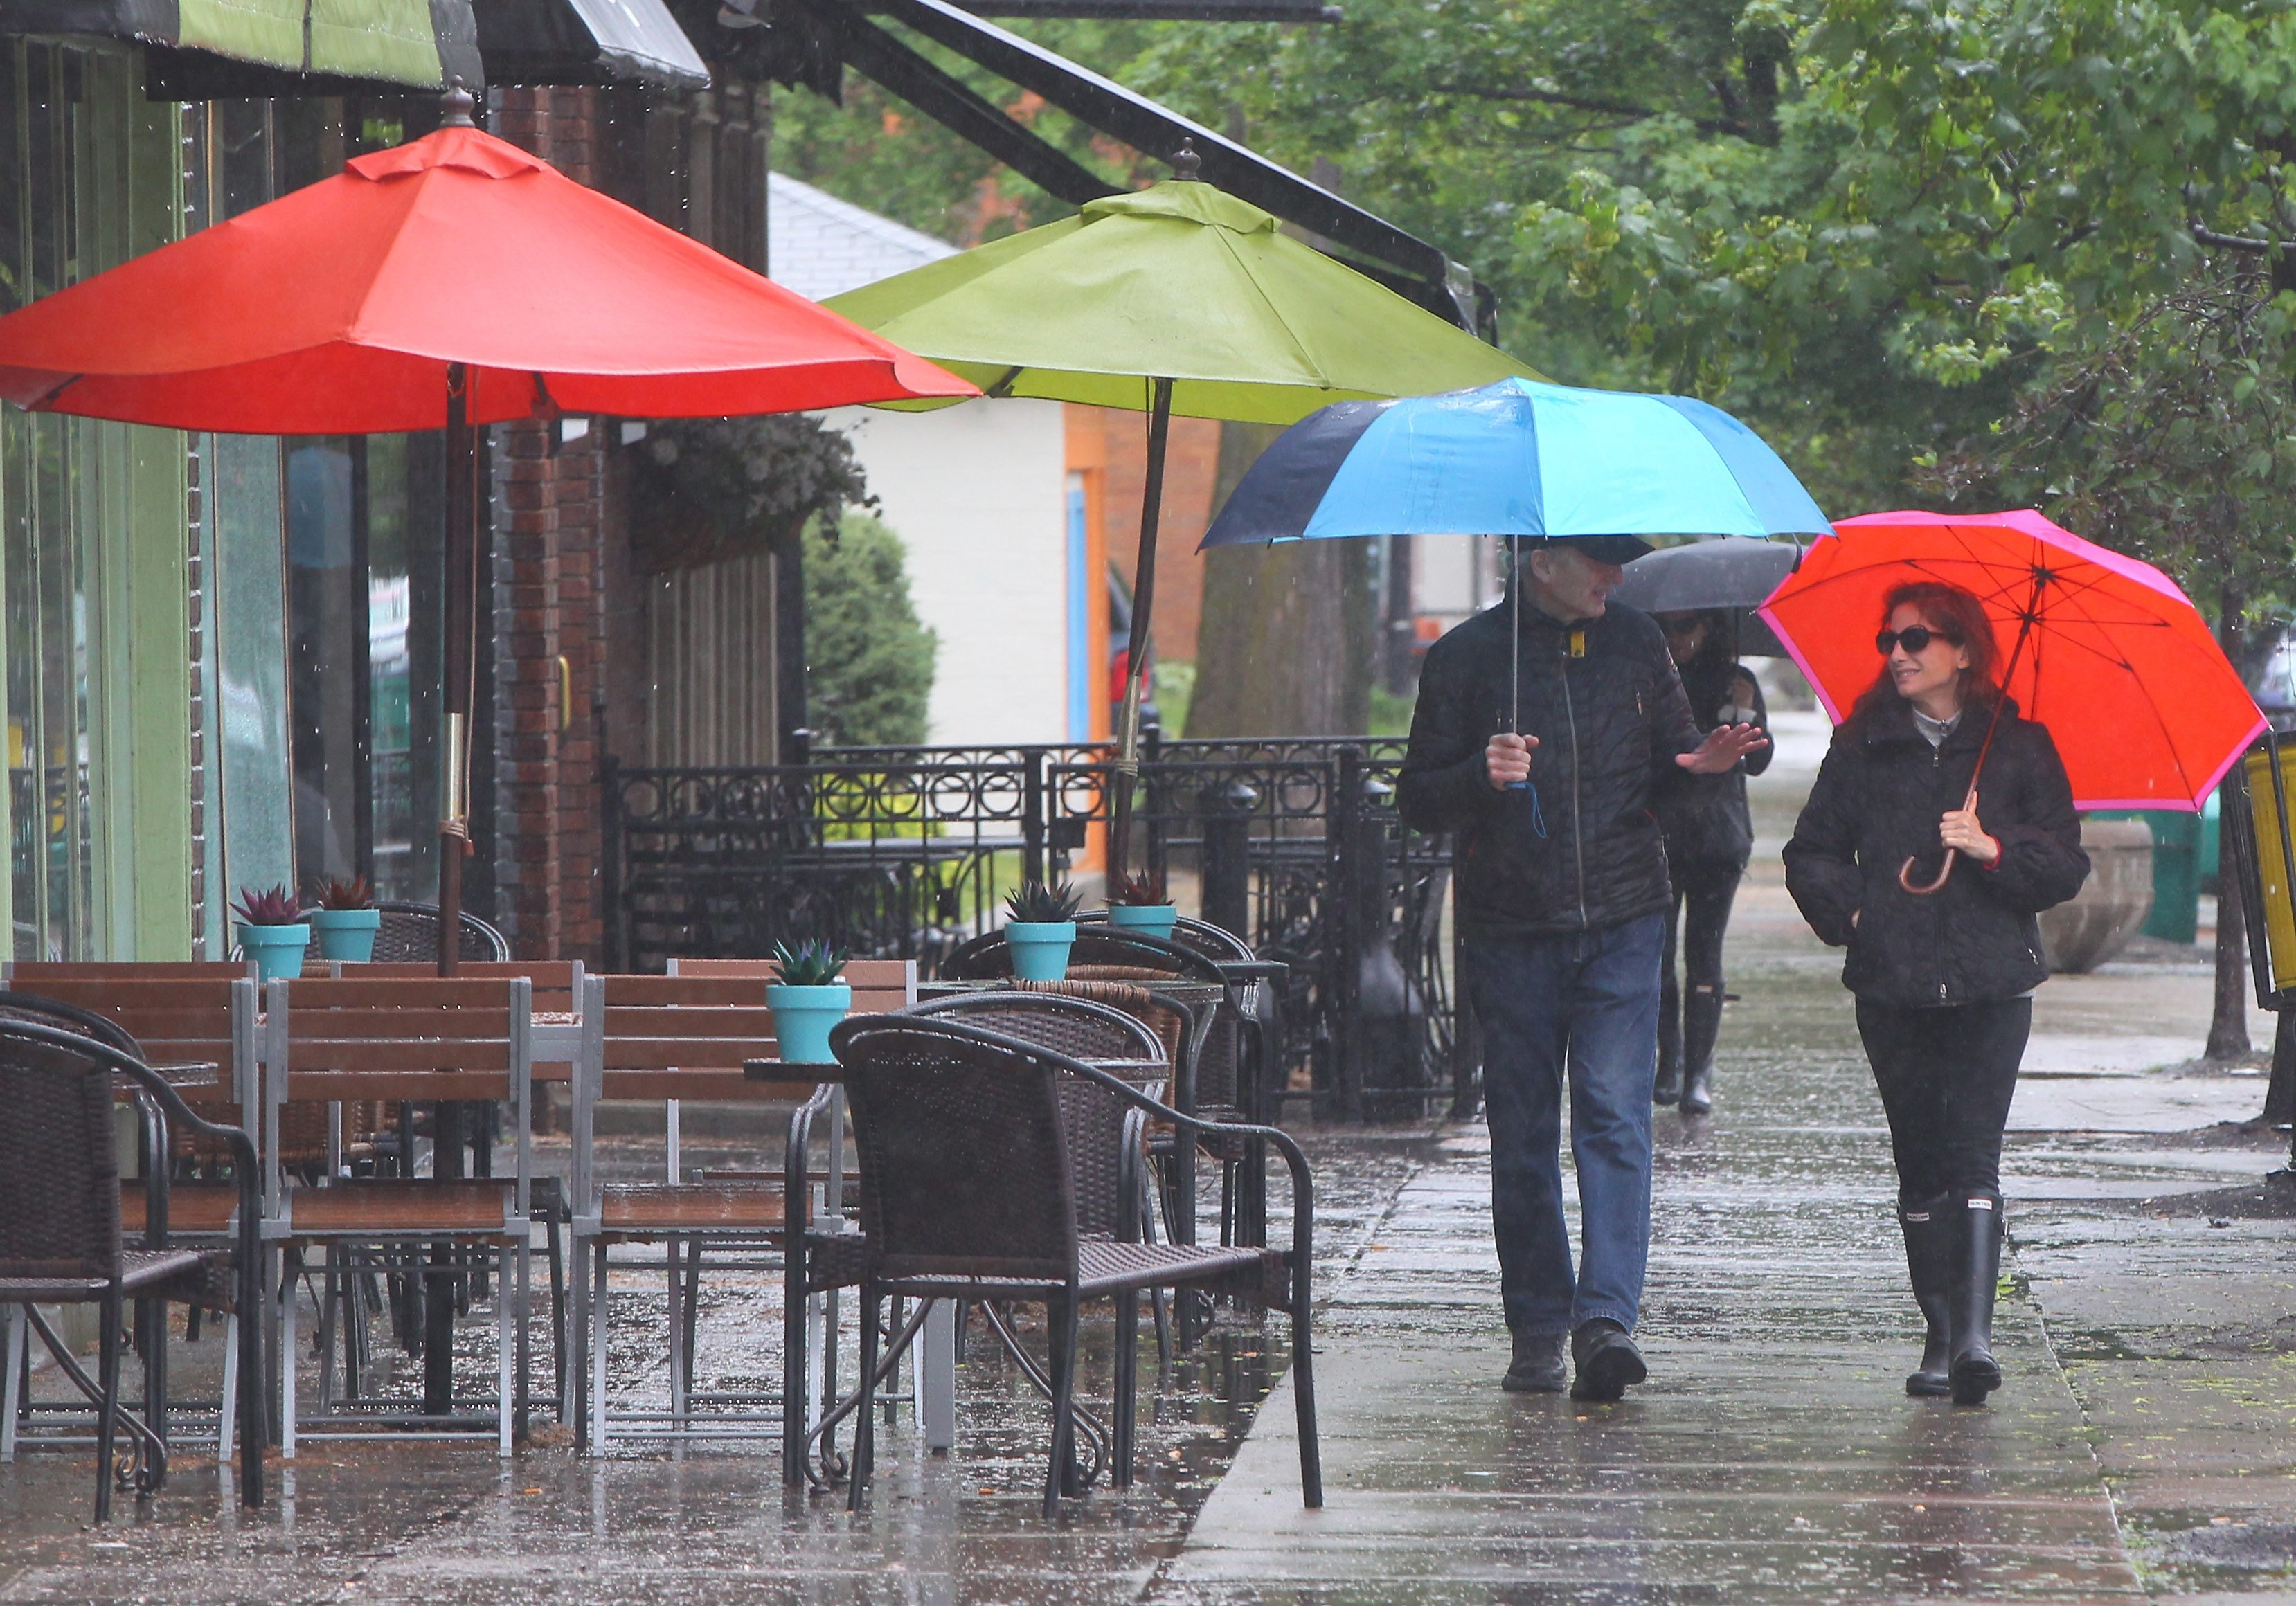 Ted and Lisa Bickford walk through the wind and rain with colorful umbrellas on Elmwood Avenue on May 31, 2015.